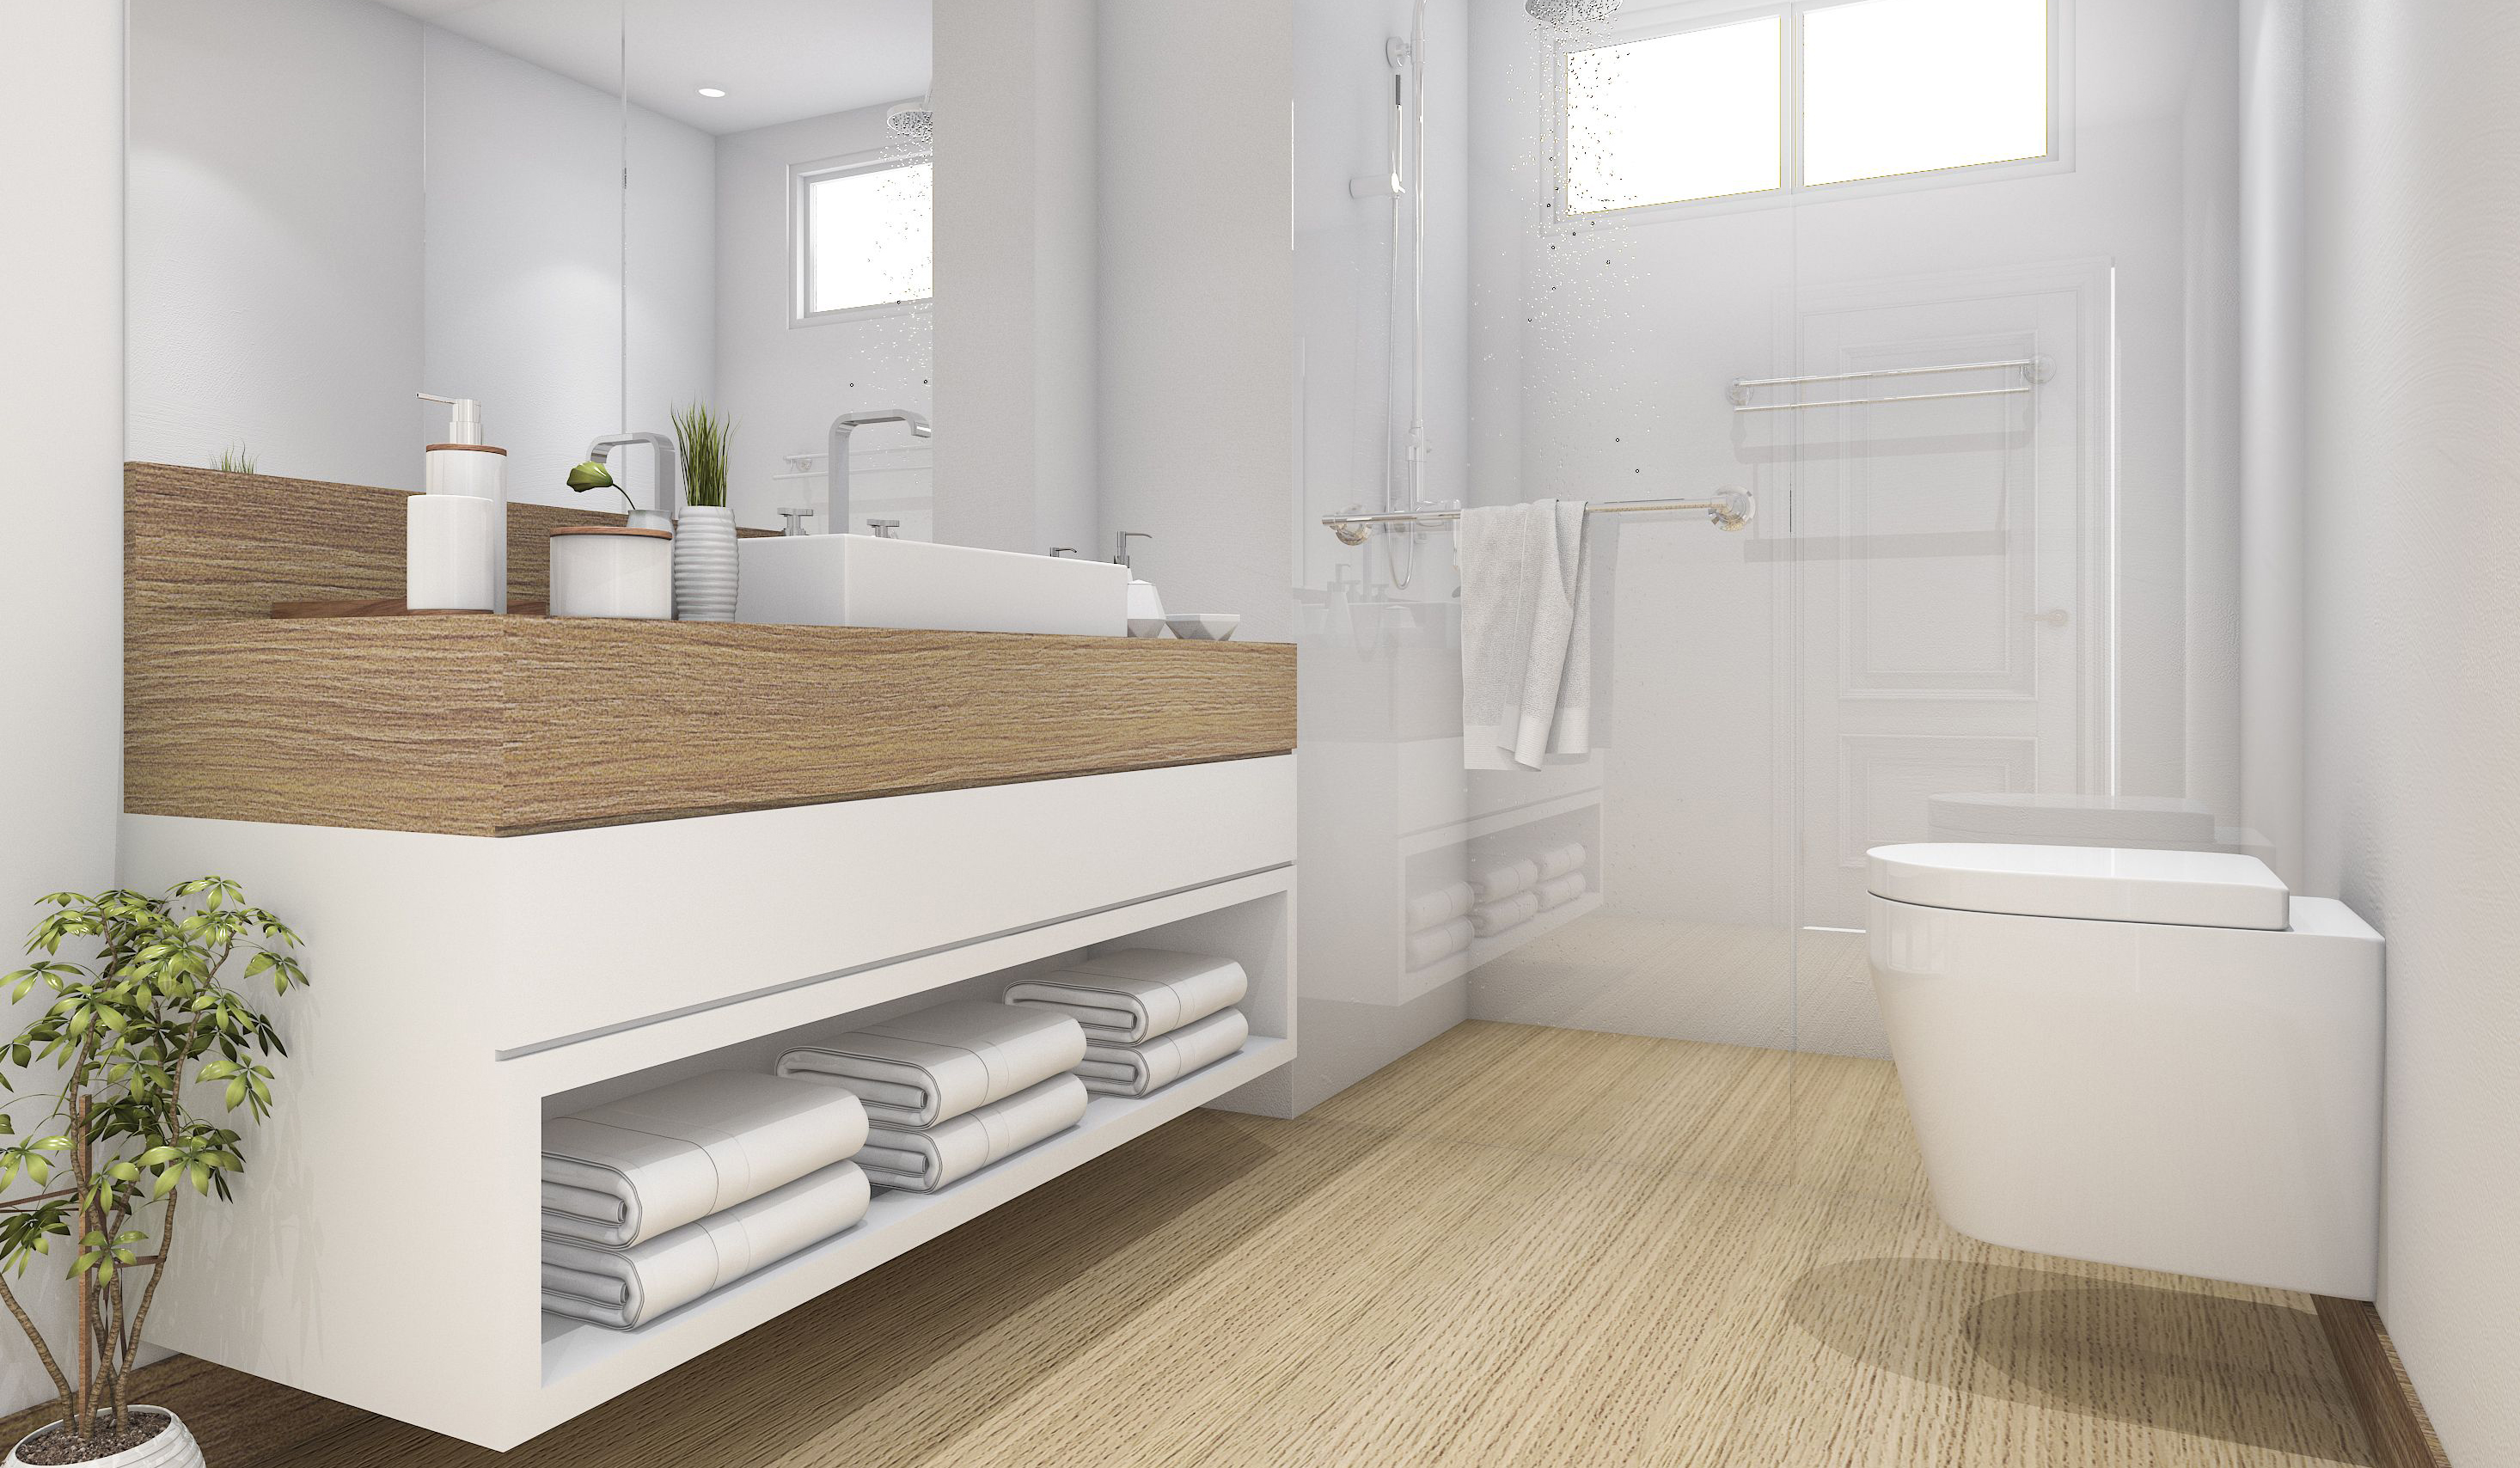 Precautions for the use and maintenance of bathroom cabinets